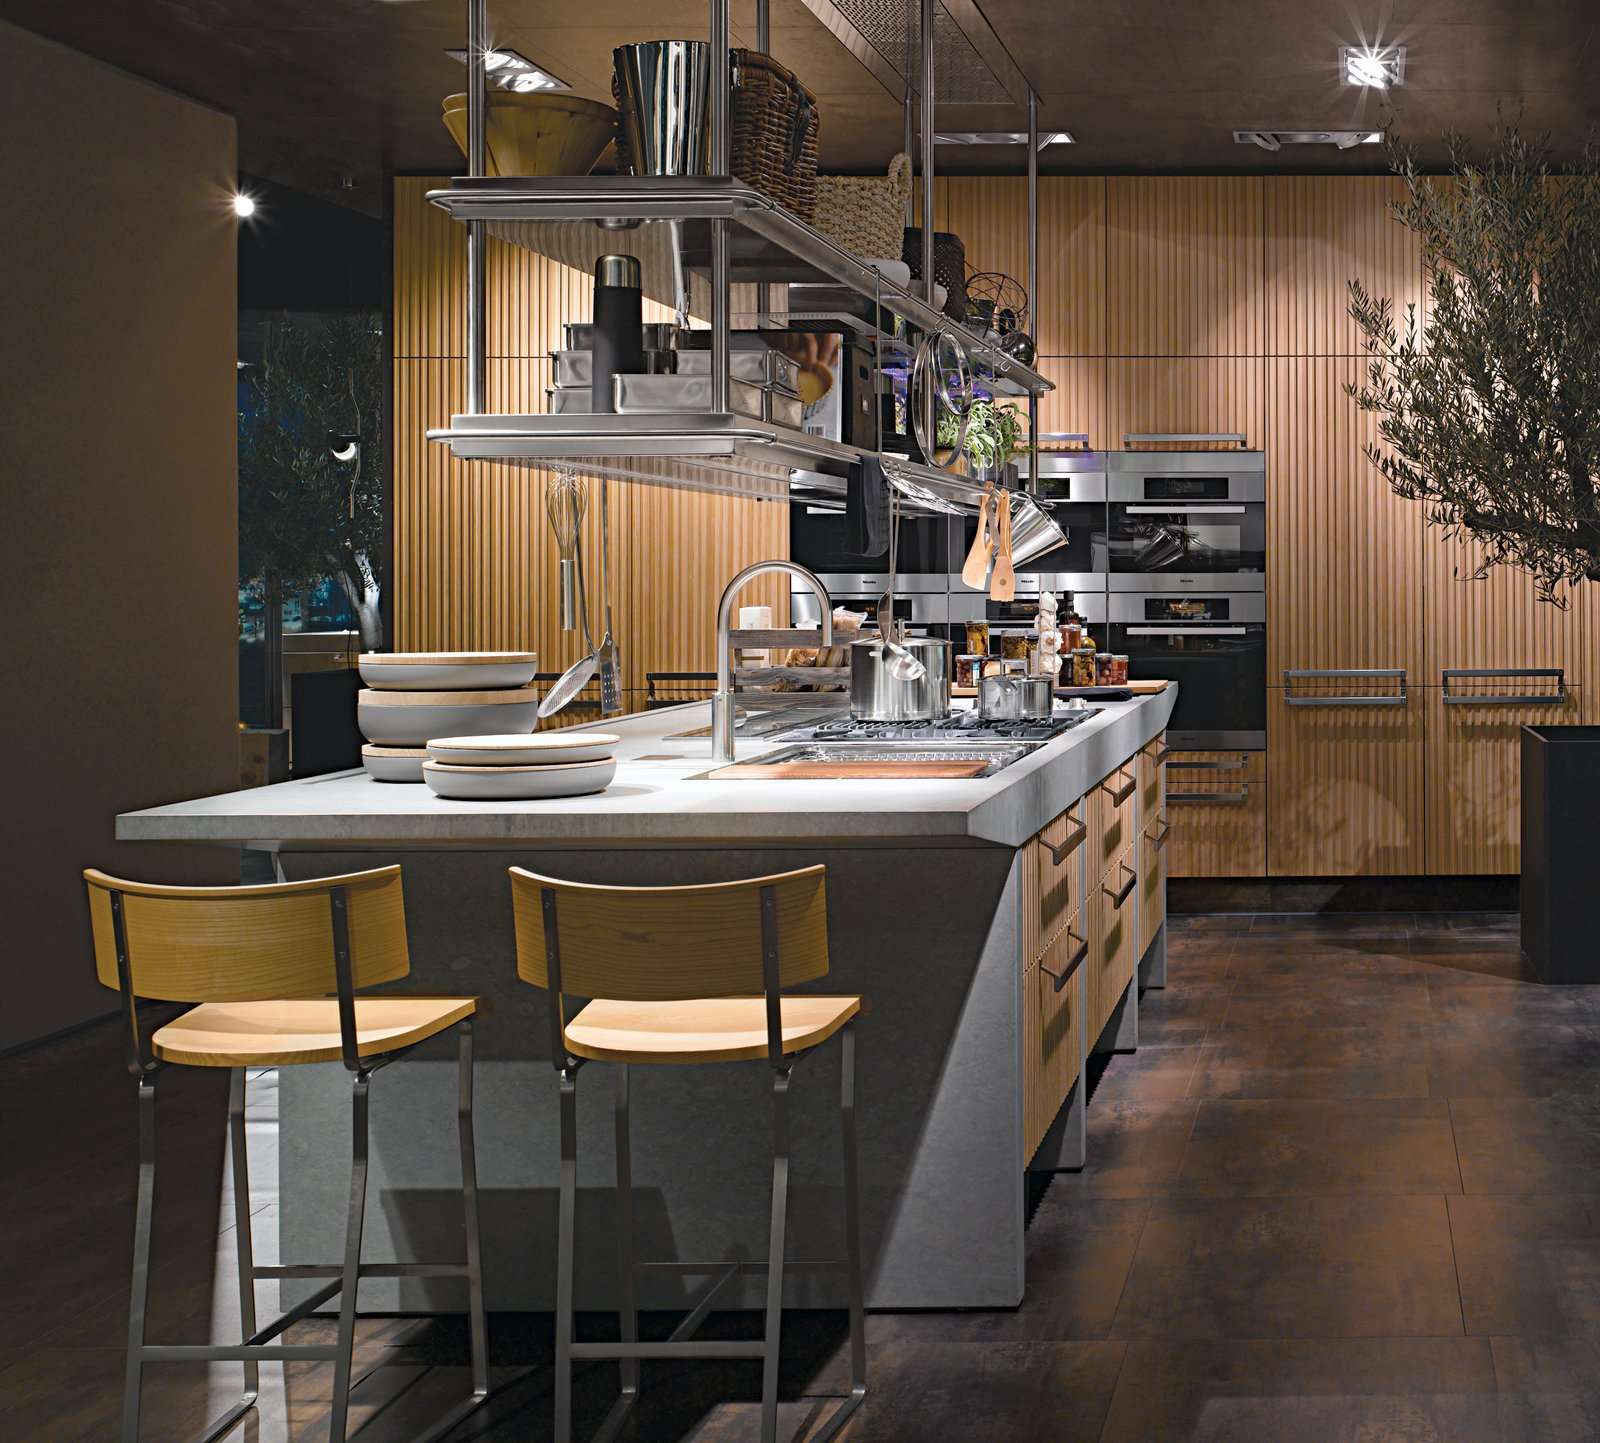 Arclinea's Lignum and Lapis kitchen system features green materials, professional-grade appliances, and advanced technology like a miniature greenhouse for growing herbs indoors and a retractable glass hood over the cooktop.  Photo 5 of 7 in An Introduction to Kitchen Design